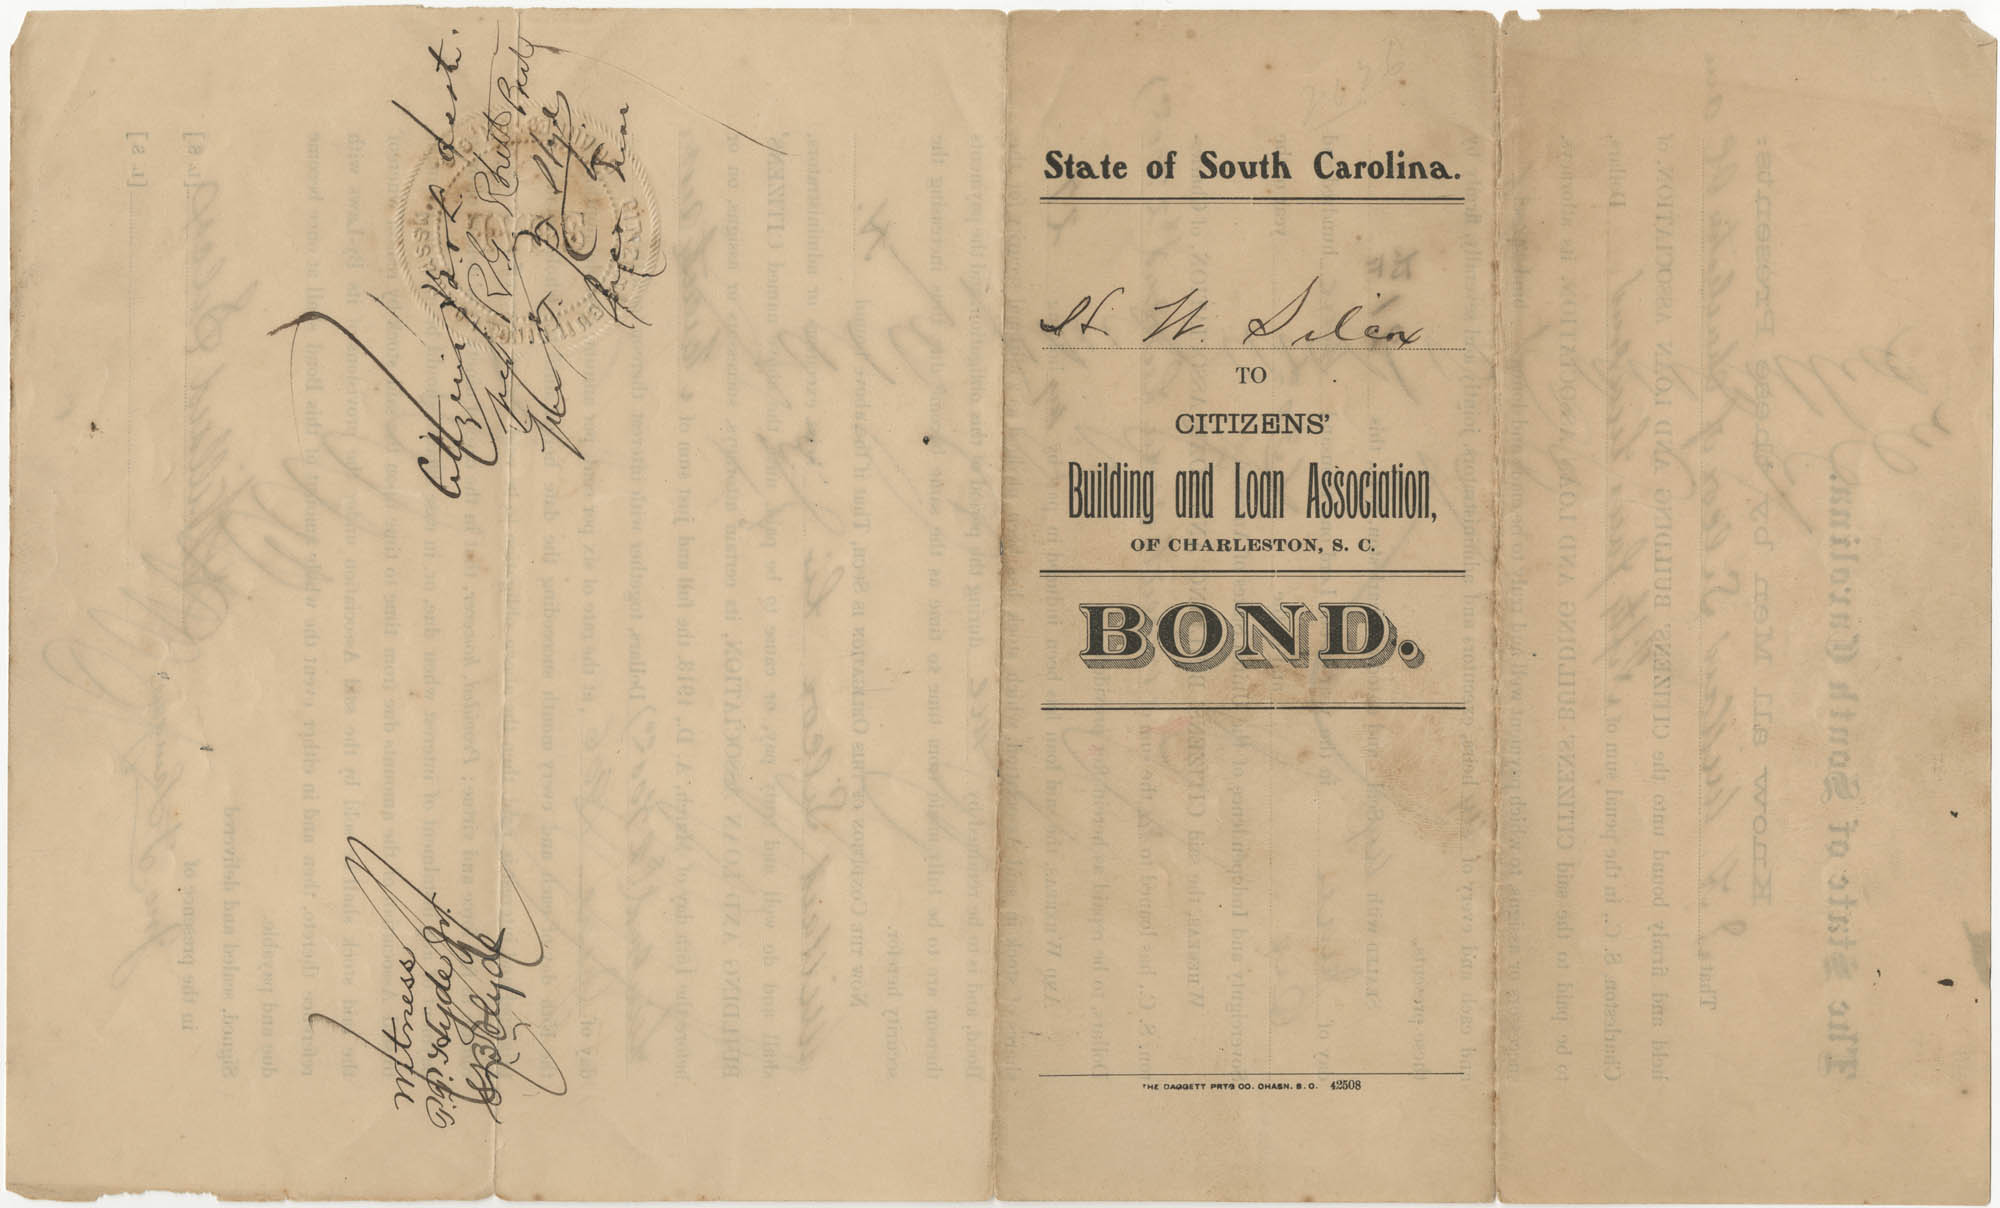 Bond, State of South Carolina Citizens' Building and Loan Association of Charleston, S. C., June 6, 1906